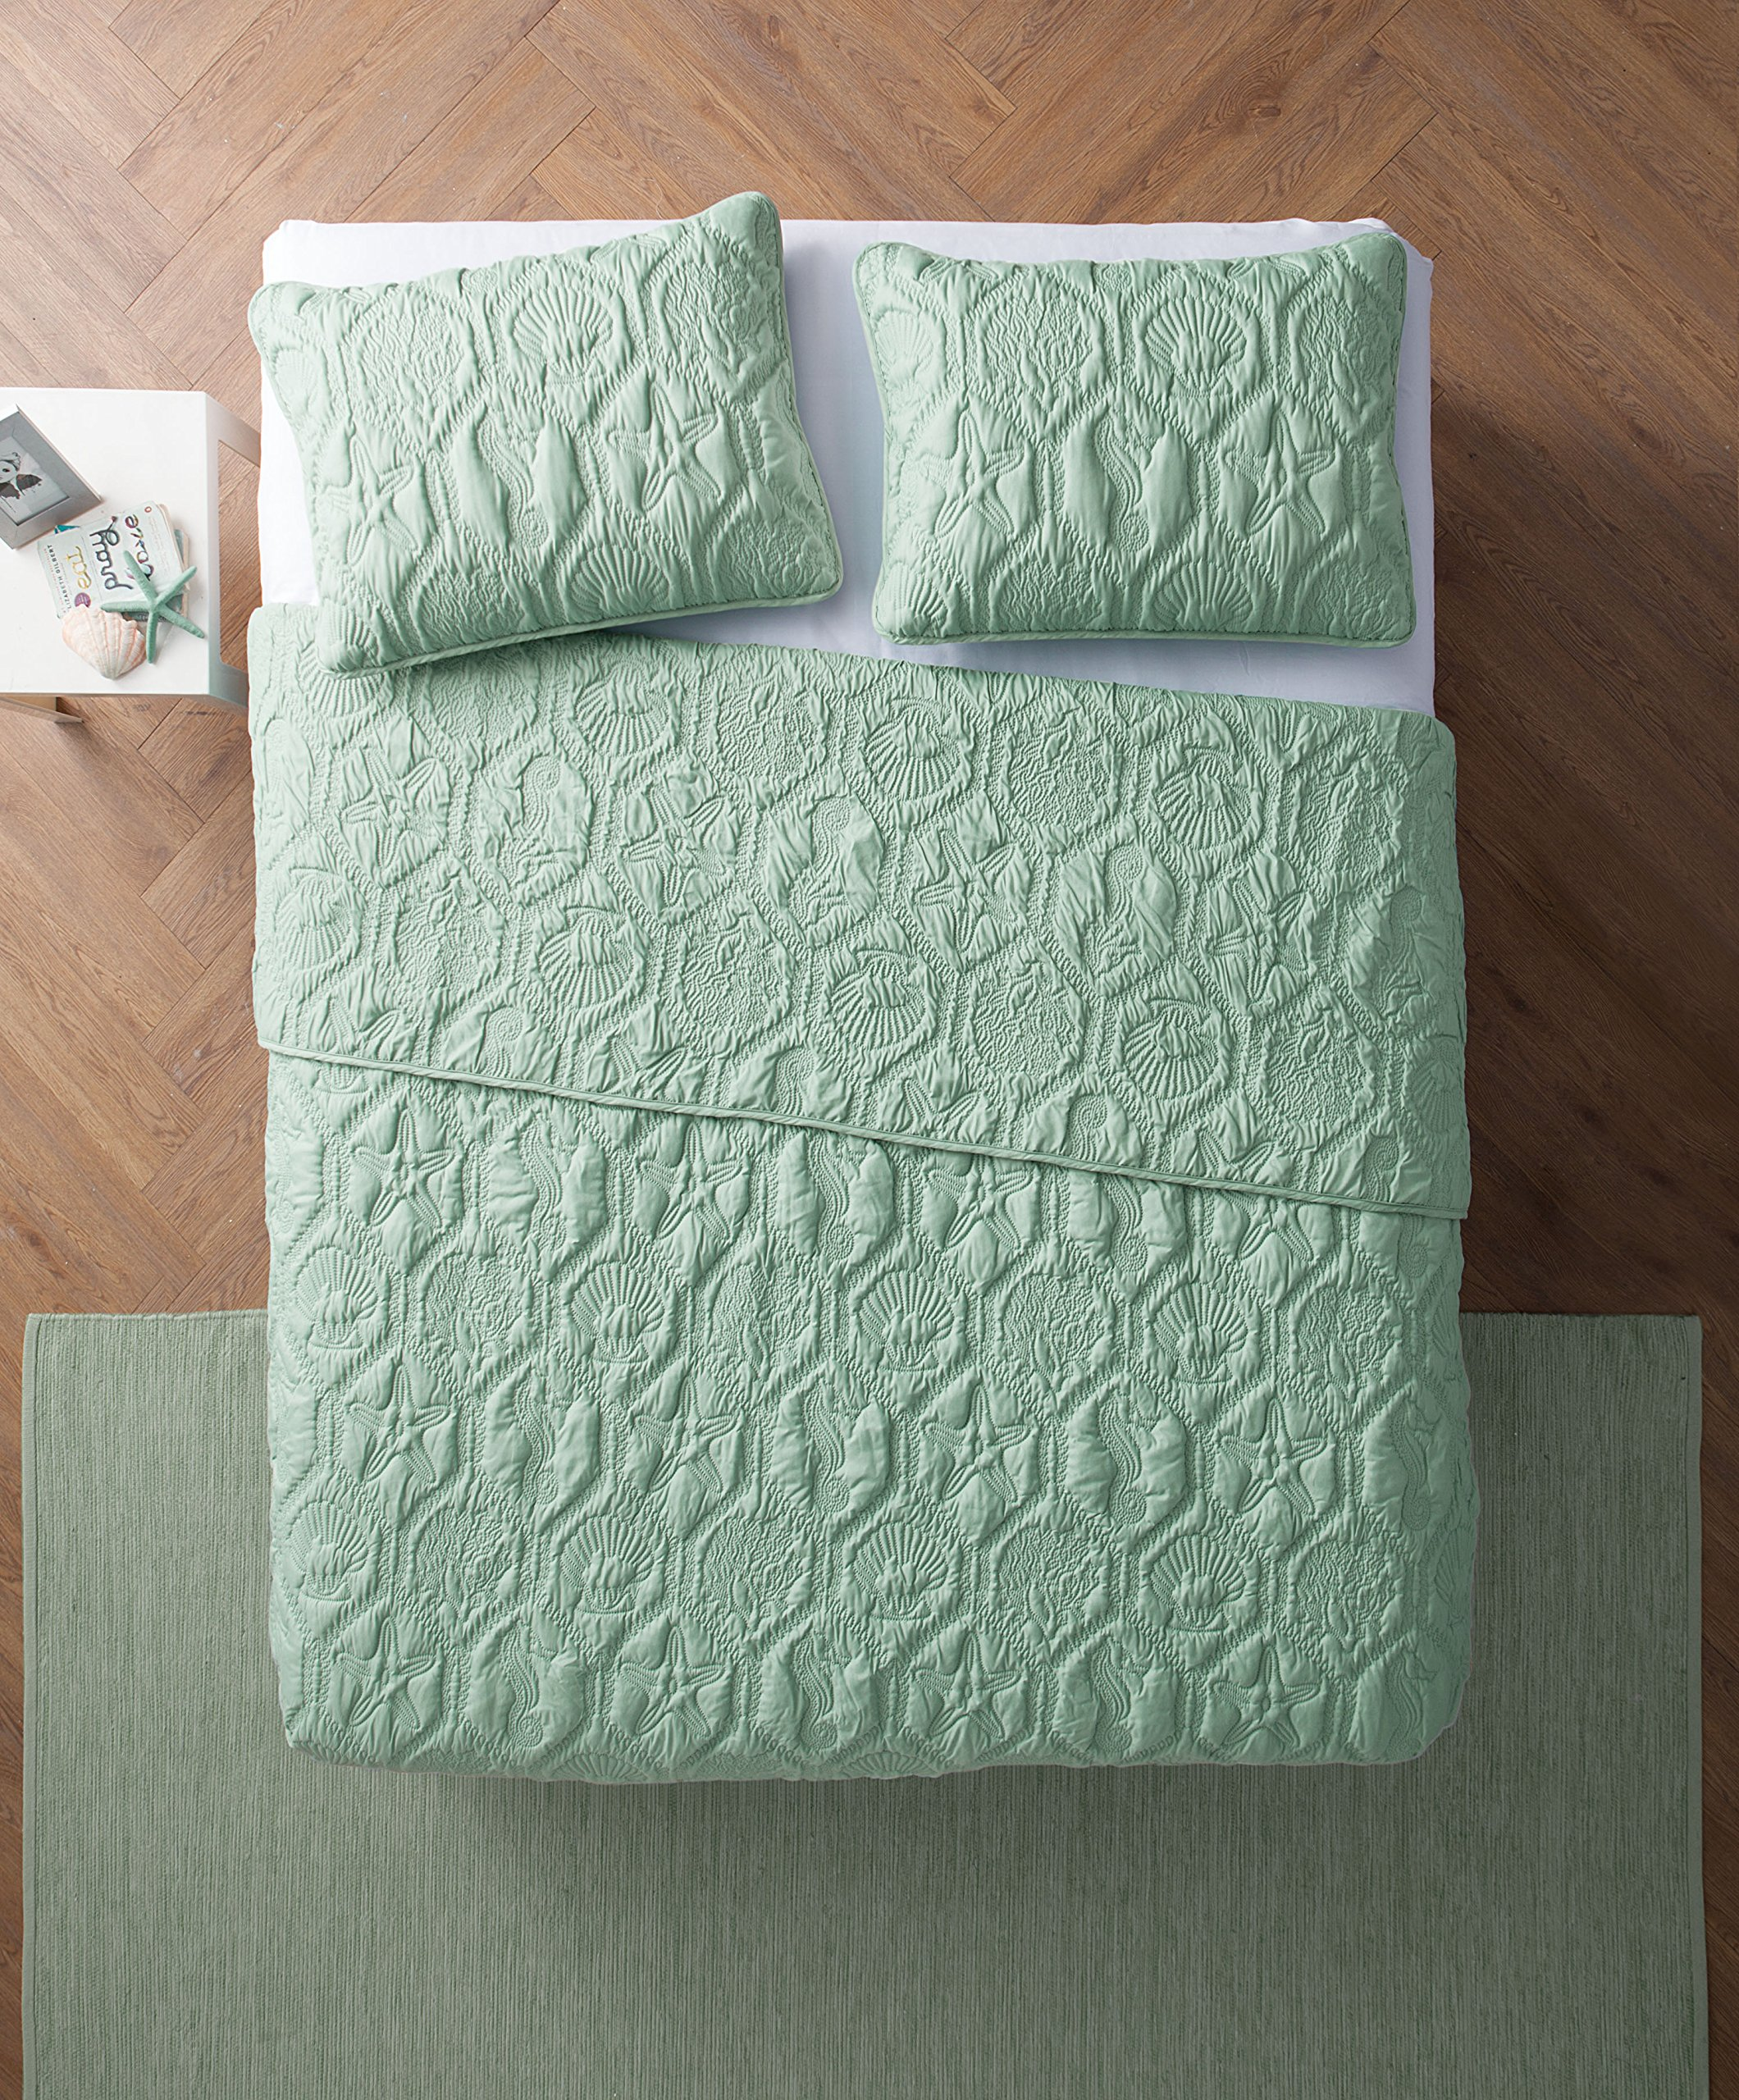 VCNY Home King Size Quilt Set in Green Charming Beach Beautiful Blanket 3 Pc Set w/Quilt, 2 Shams